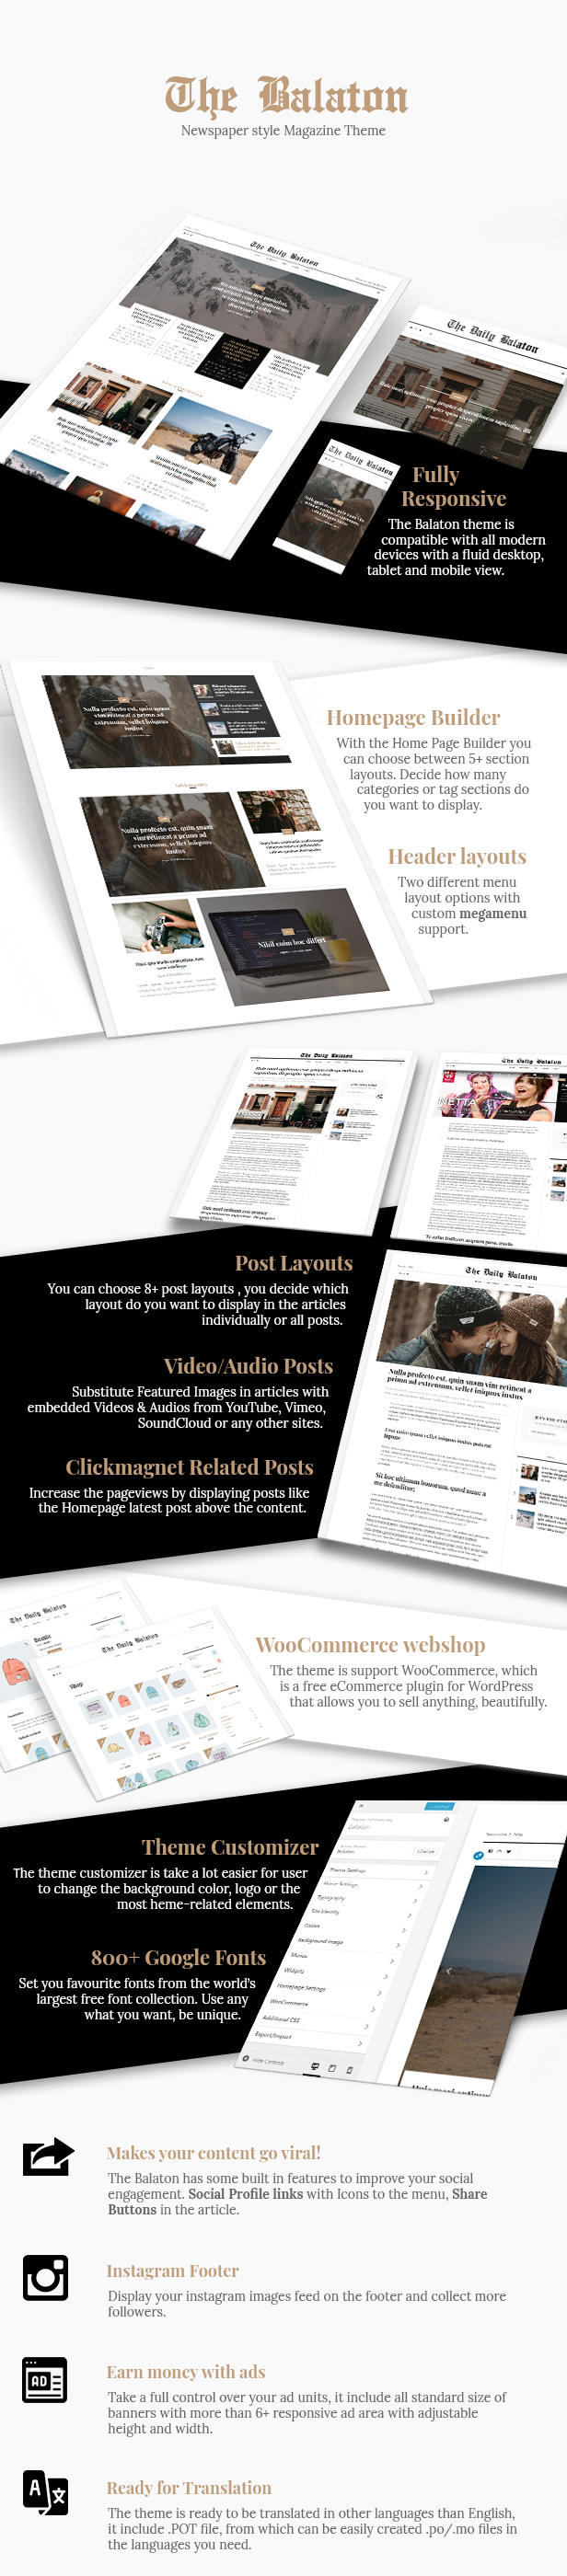 Balaton -  Newspaper style Magazine WordPress Theme - 3